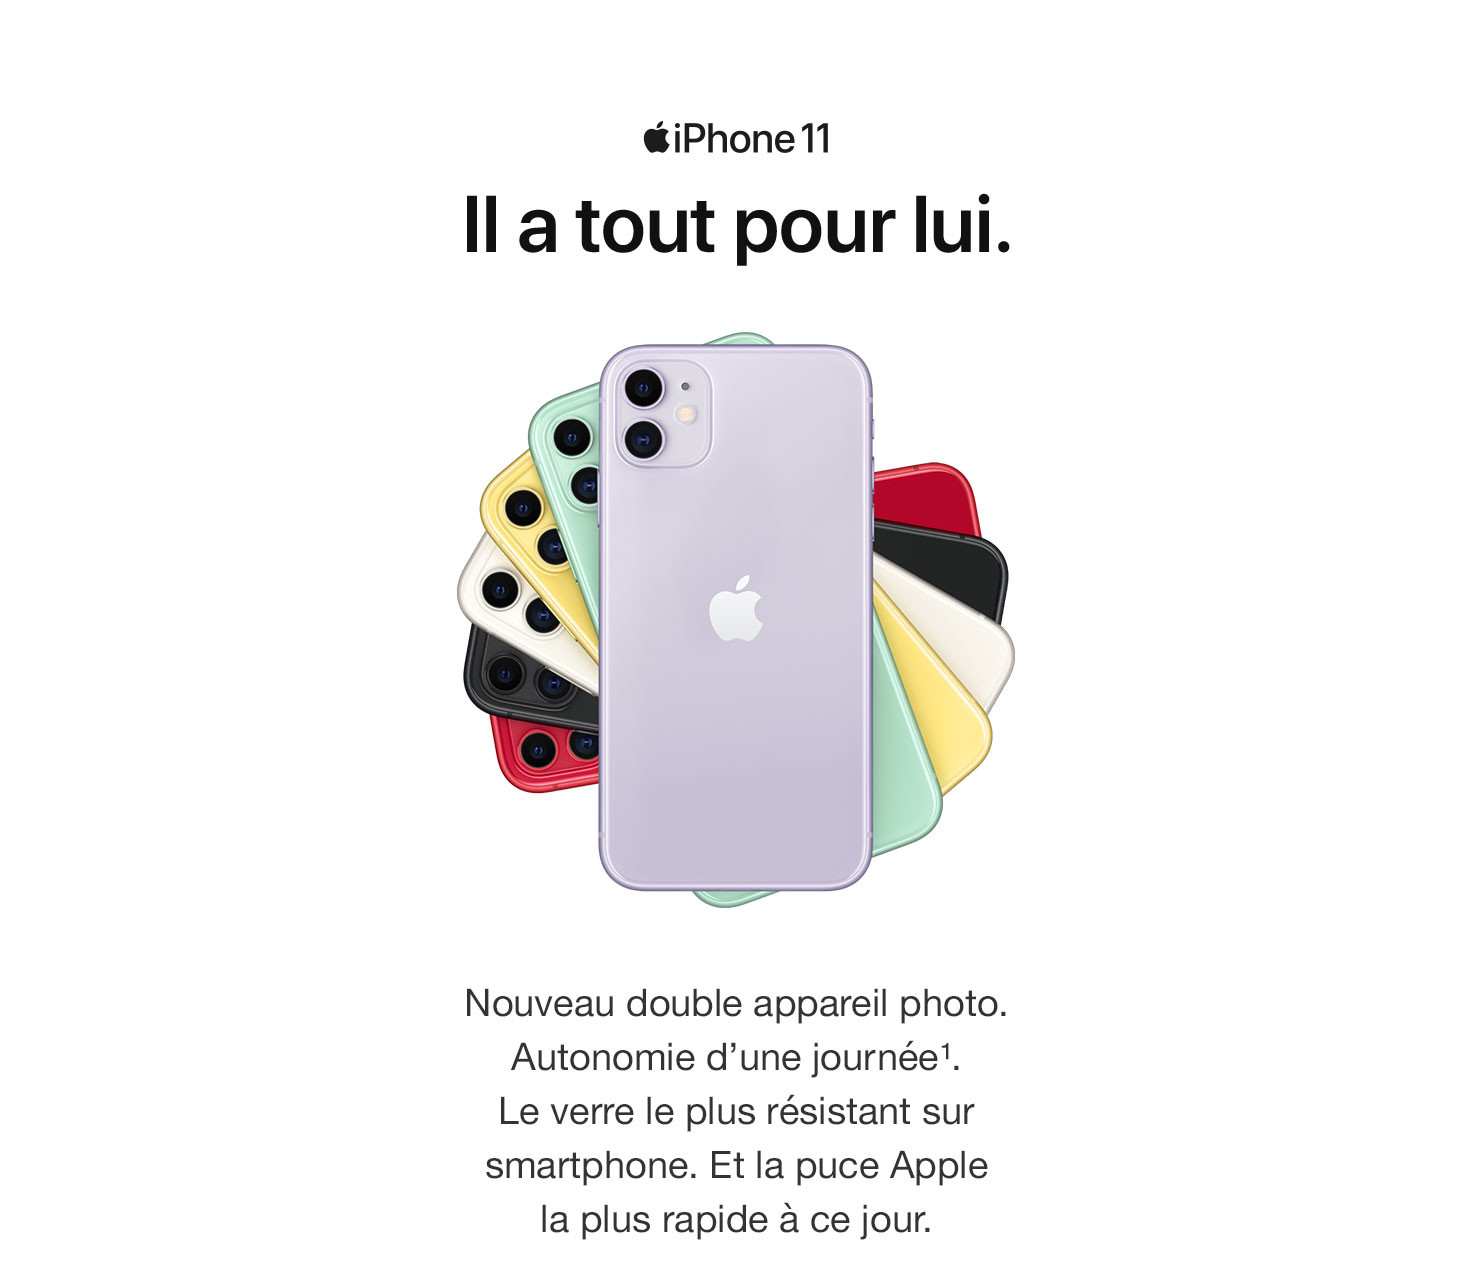 iPhone11-productpage-fr-mobile_01.jpg